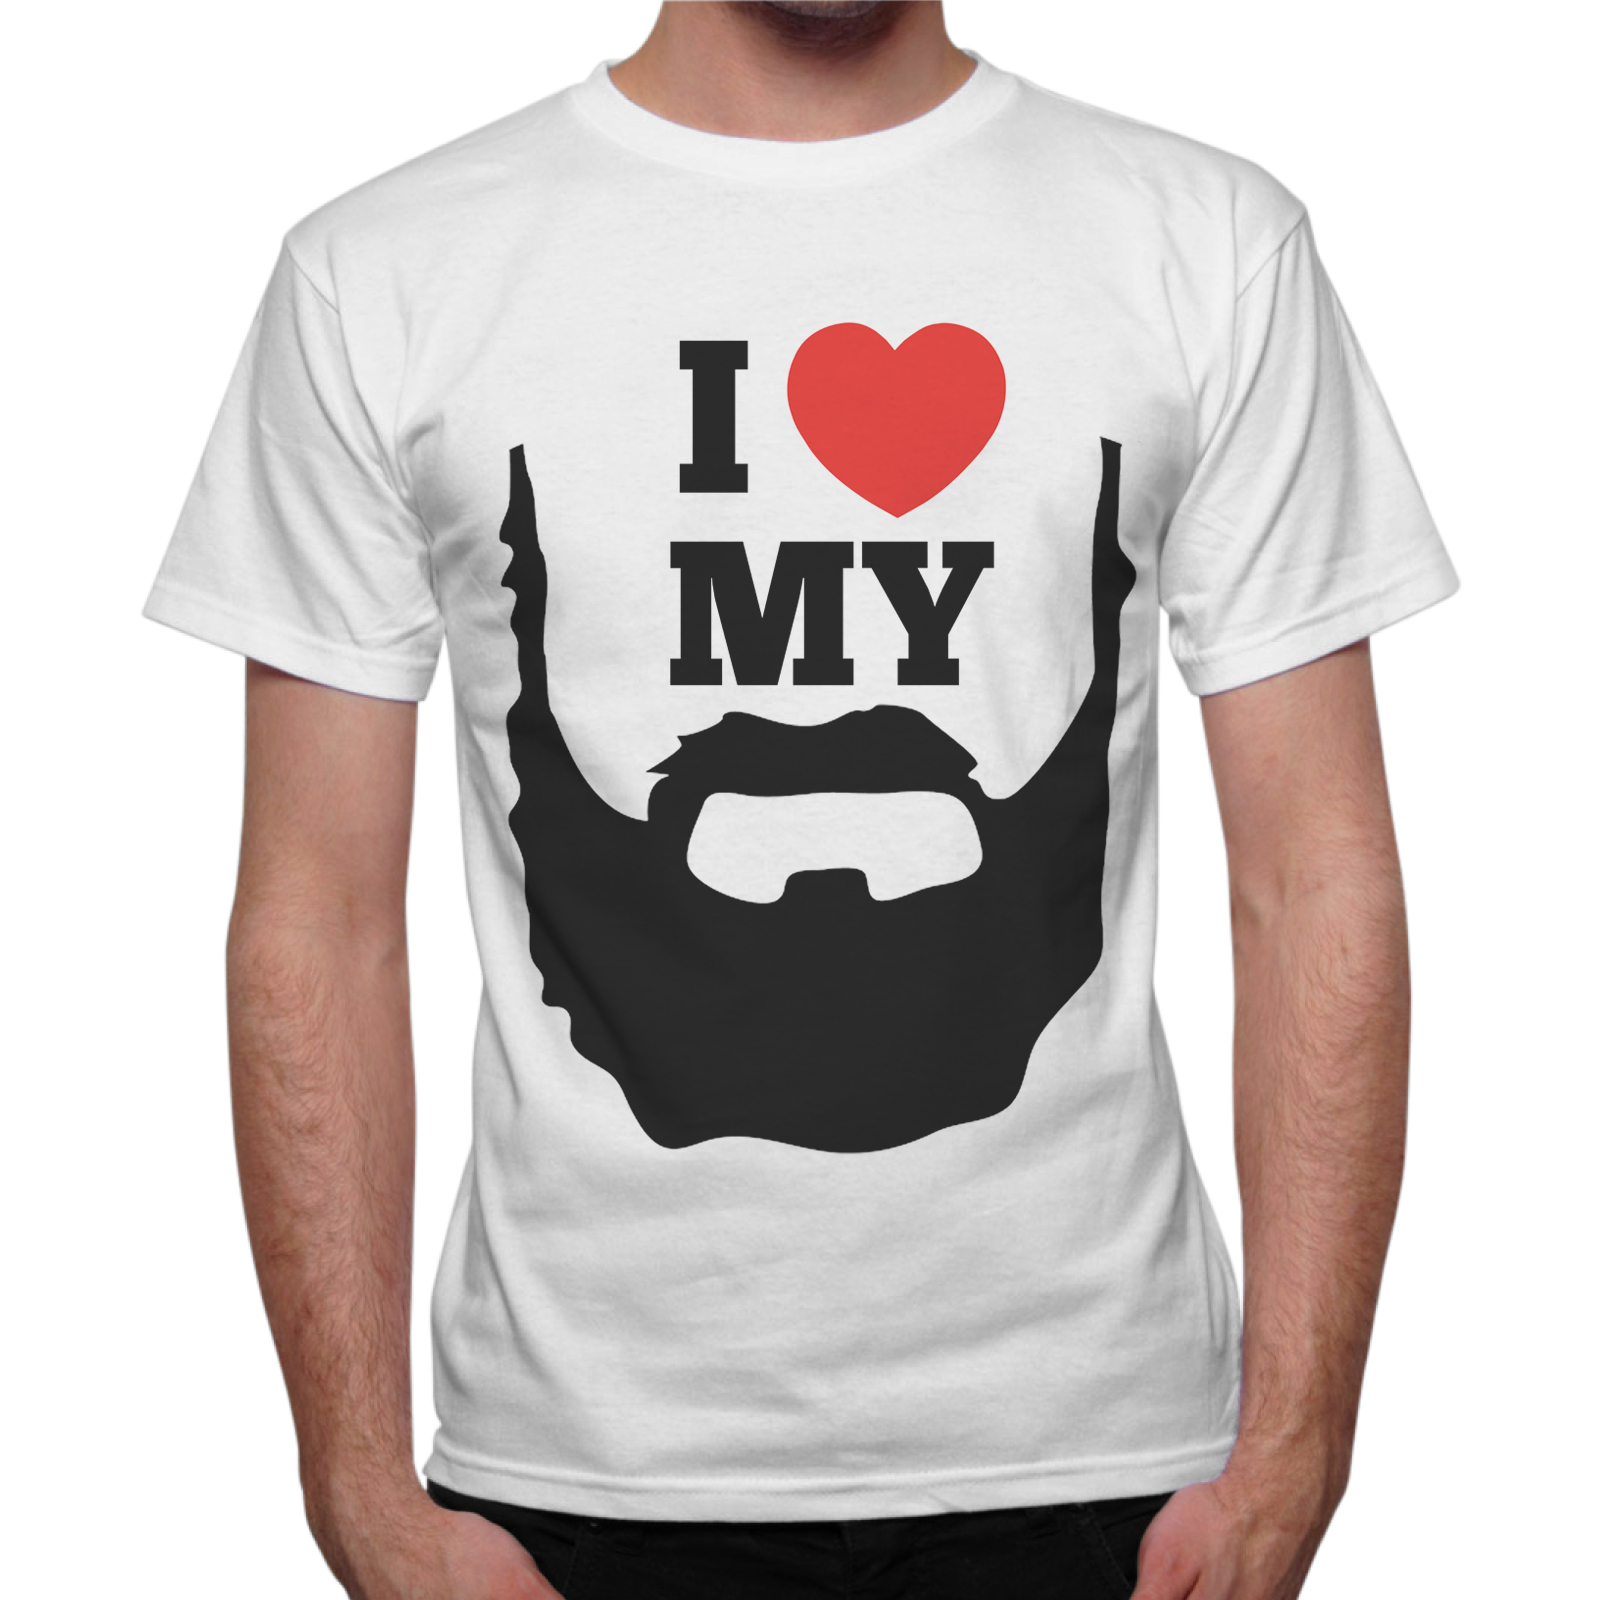 T-Shirt Uomo I LOVE MY BEARD